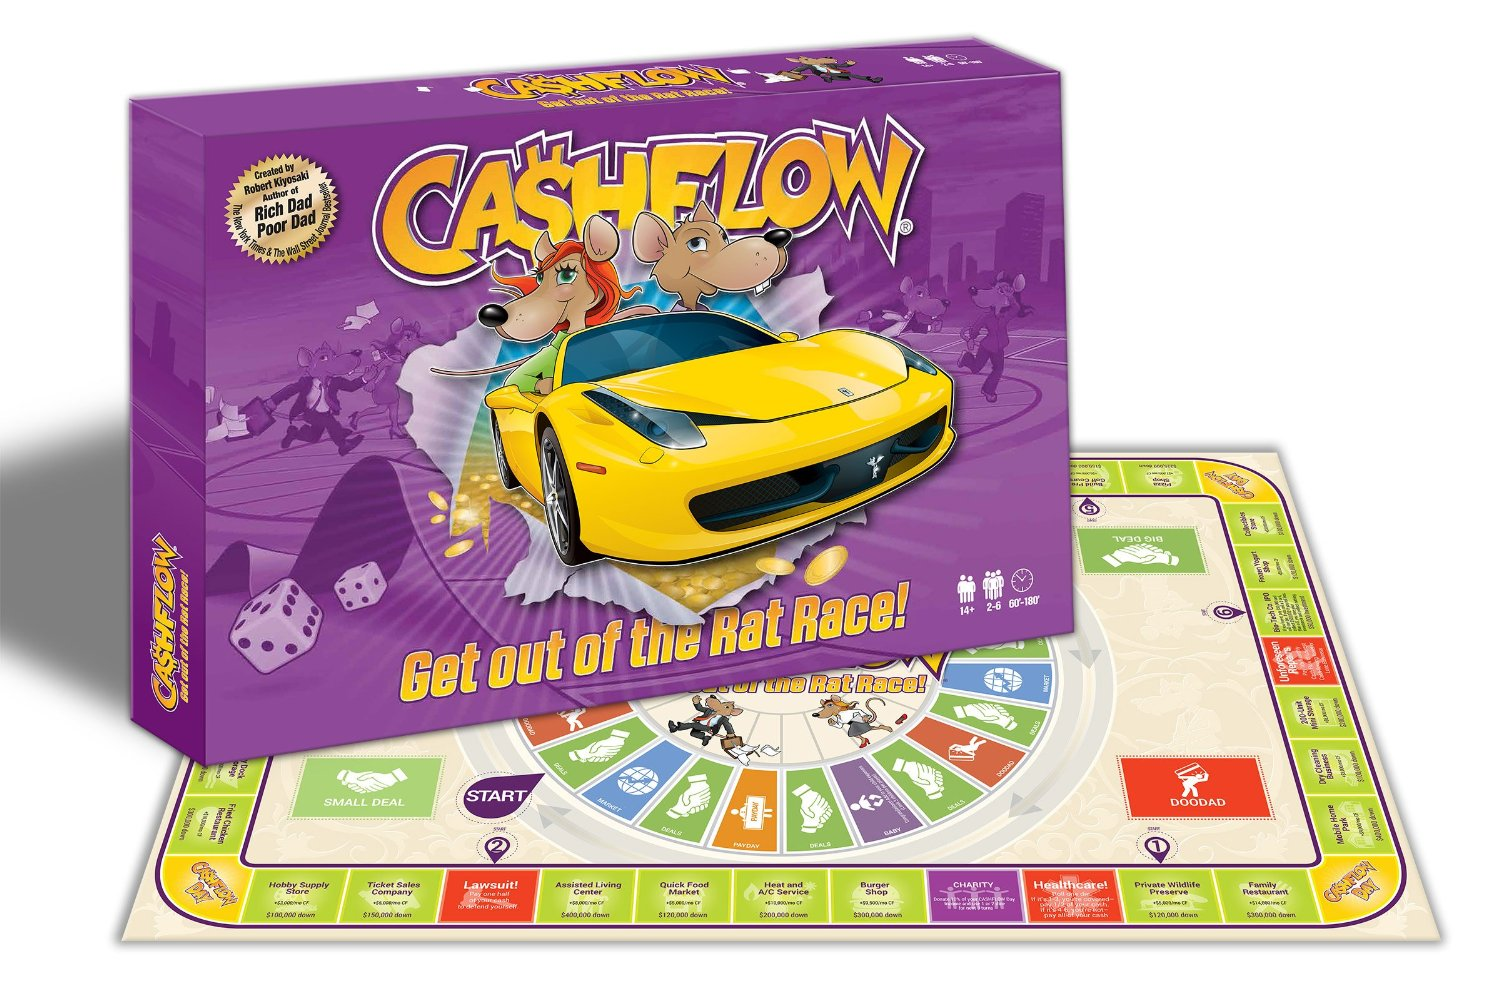 Learn And Win With The Cashflow Board Game